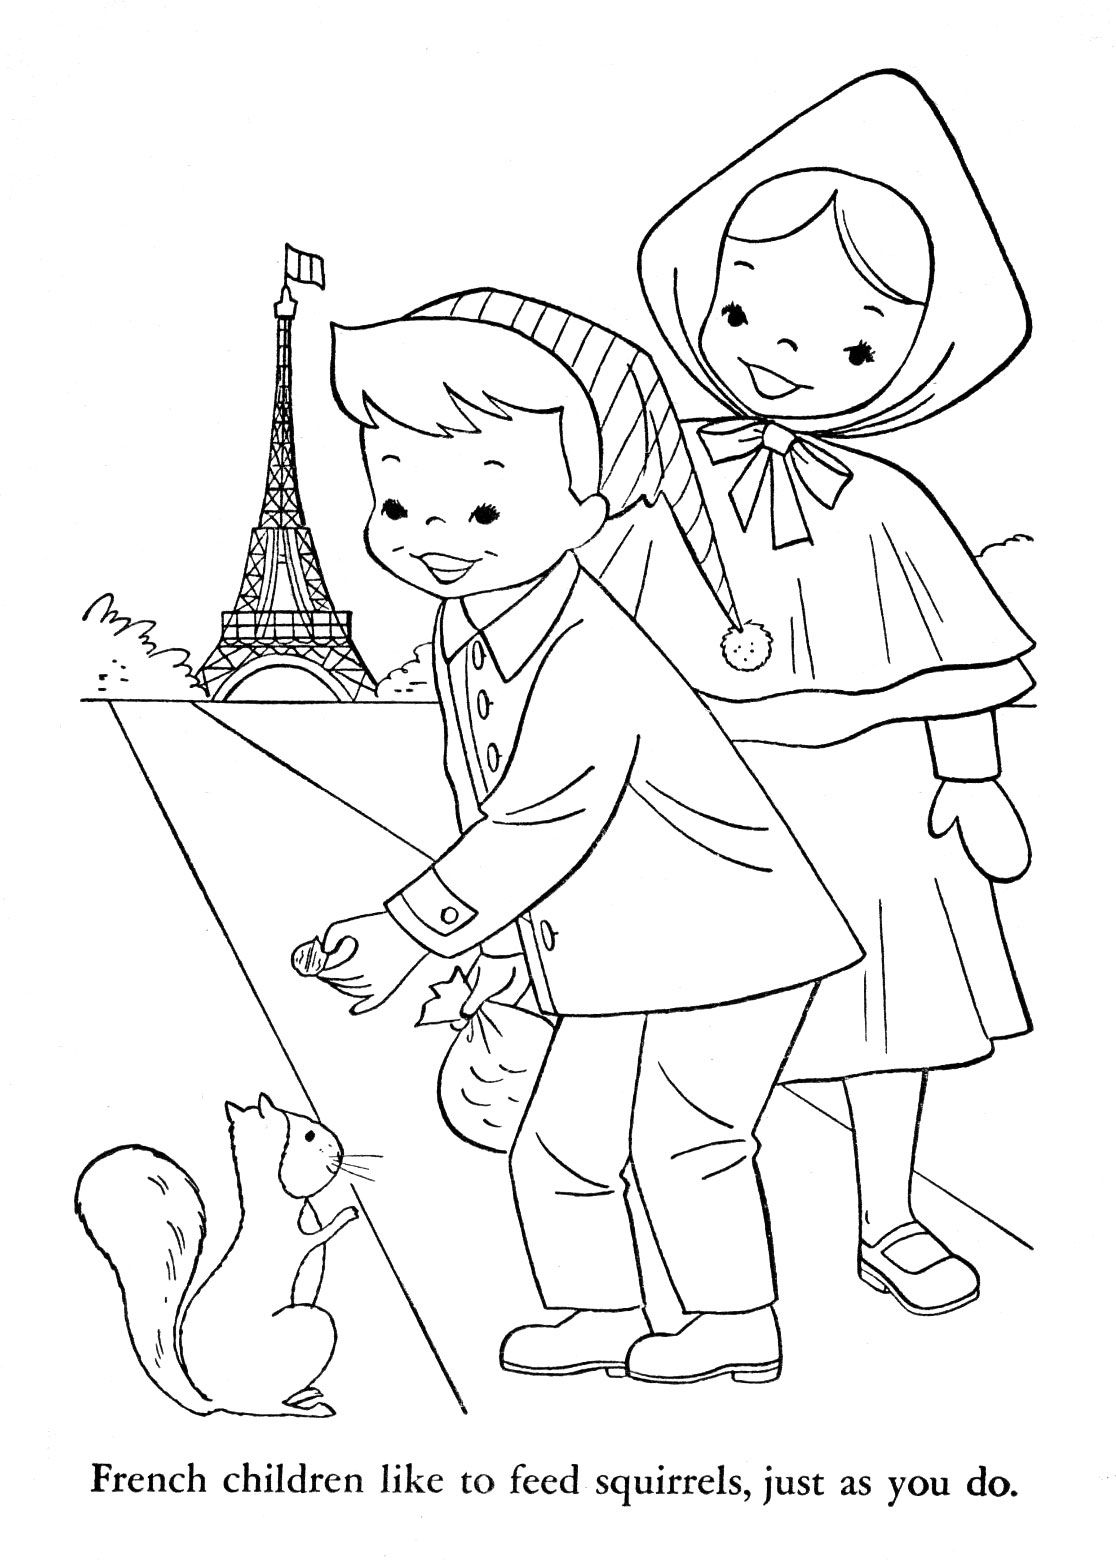 flag of switzerland coloring page swiss family robinson coloring sheets coloring pages of flag switzerland page coloring